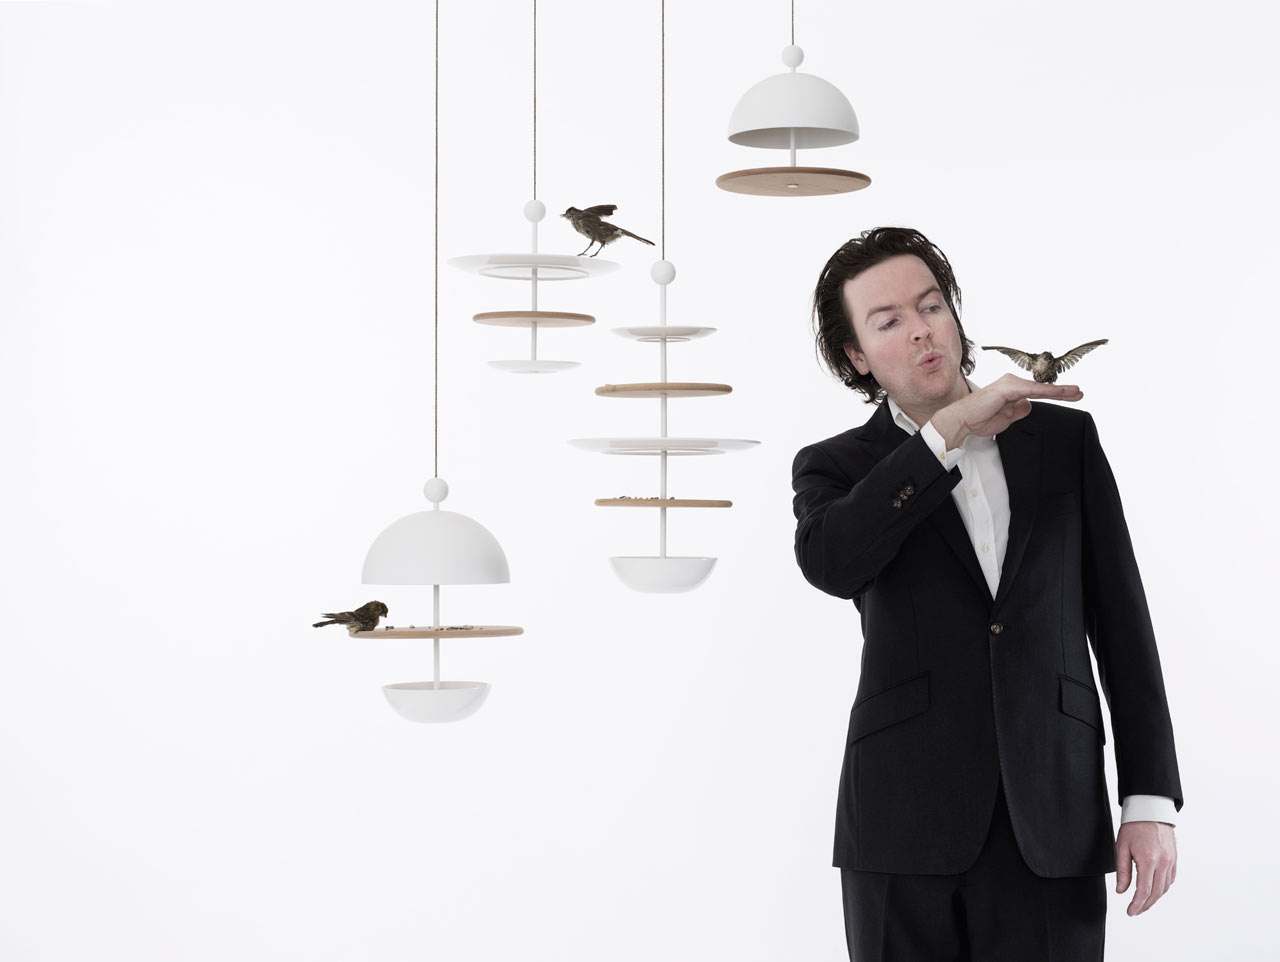 Frederik Roijé's Dish of Desire Bird Feeders Are Designed for Birds to Feast